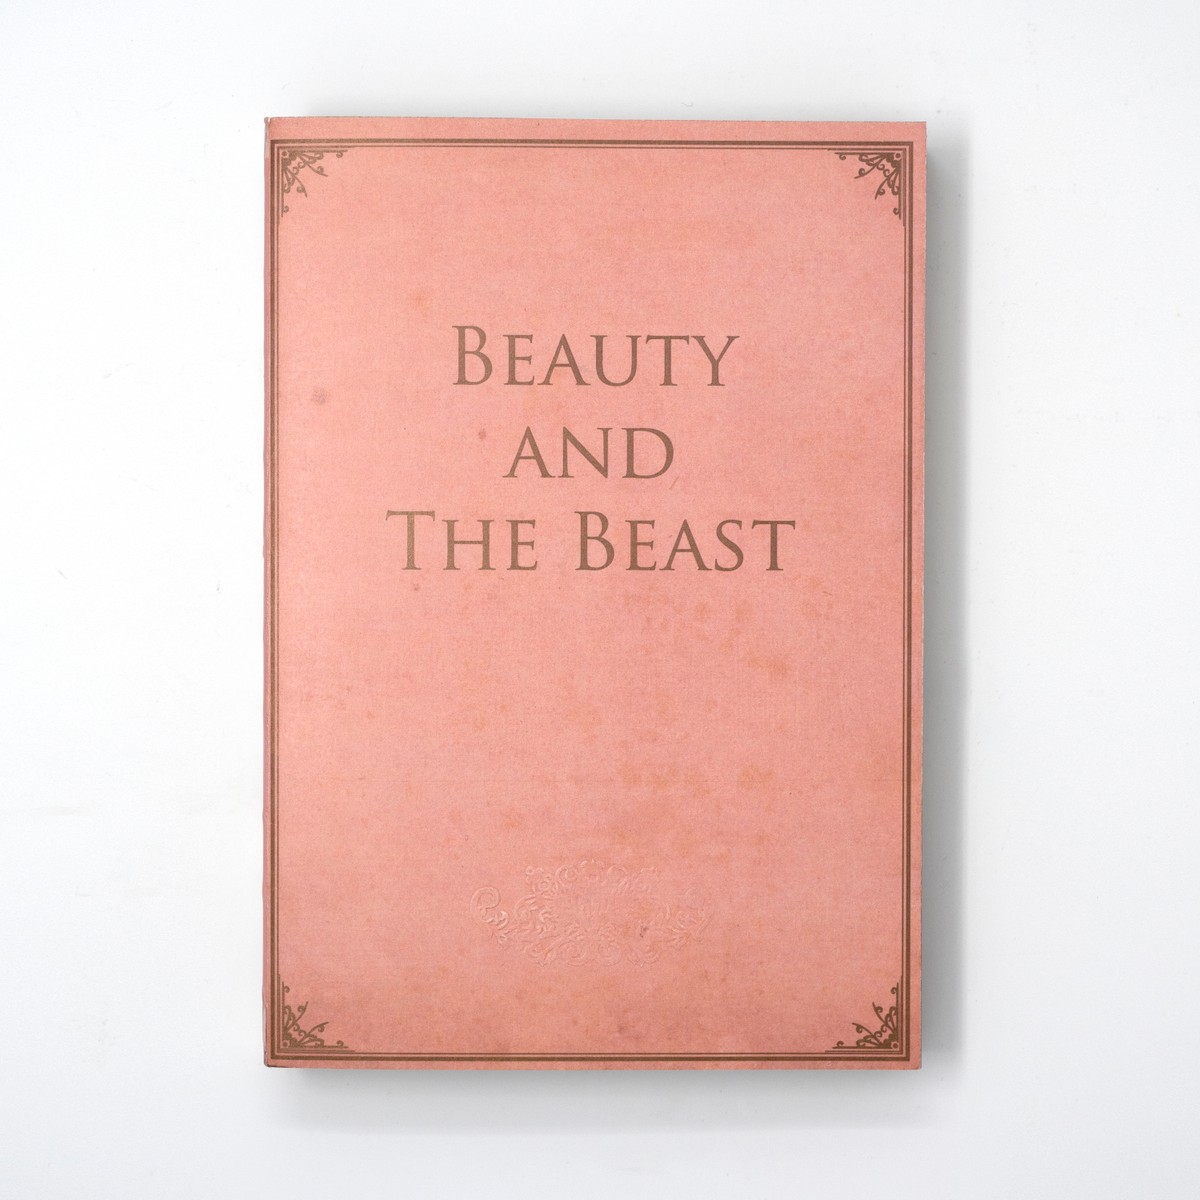 Photo of Beauty and the Beast Notebook